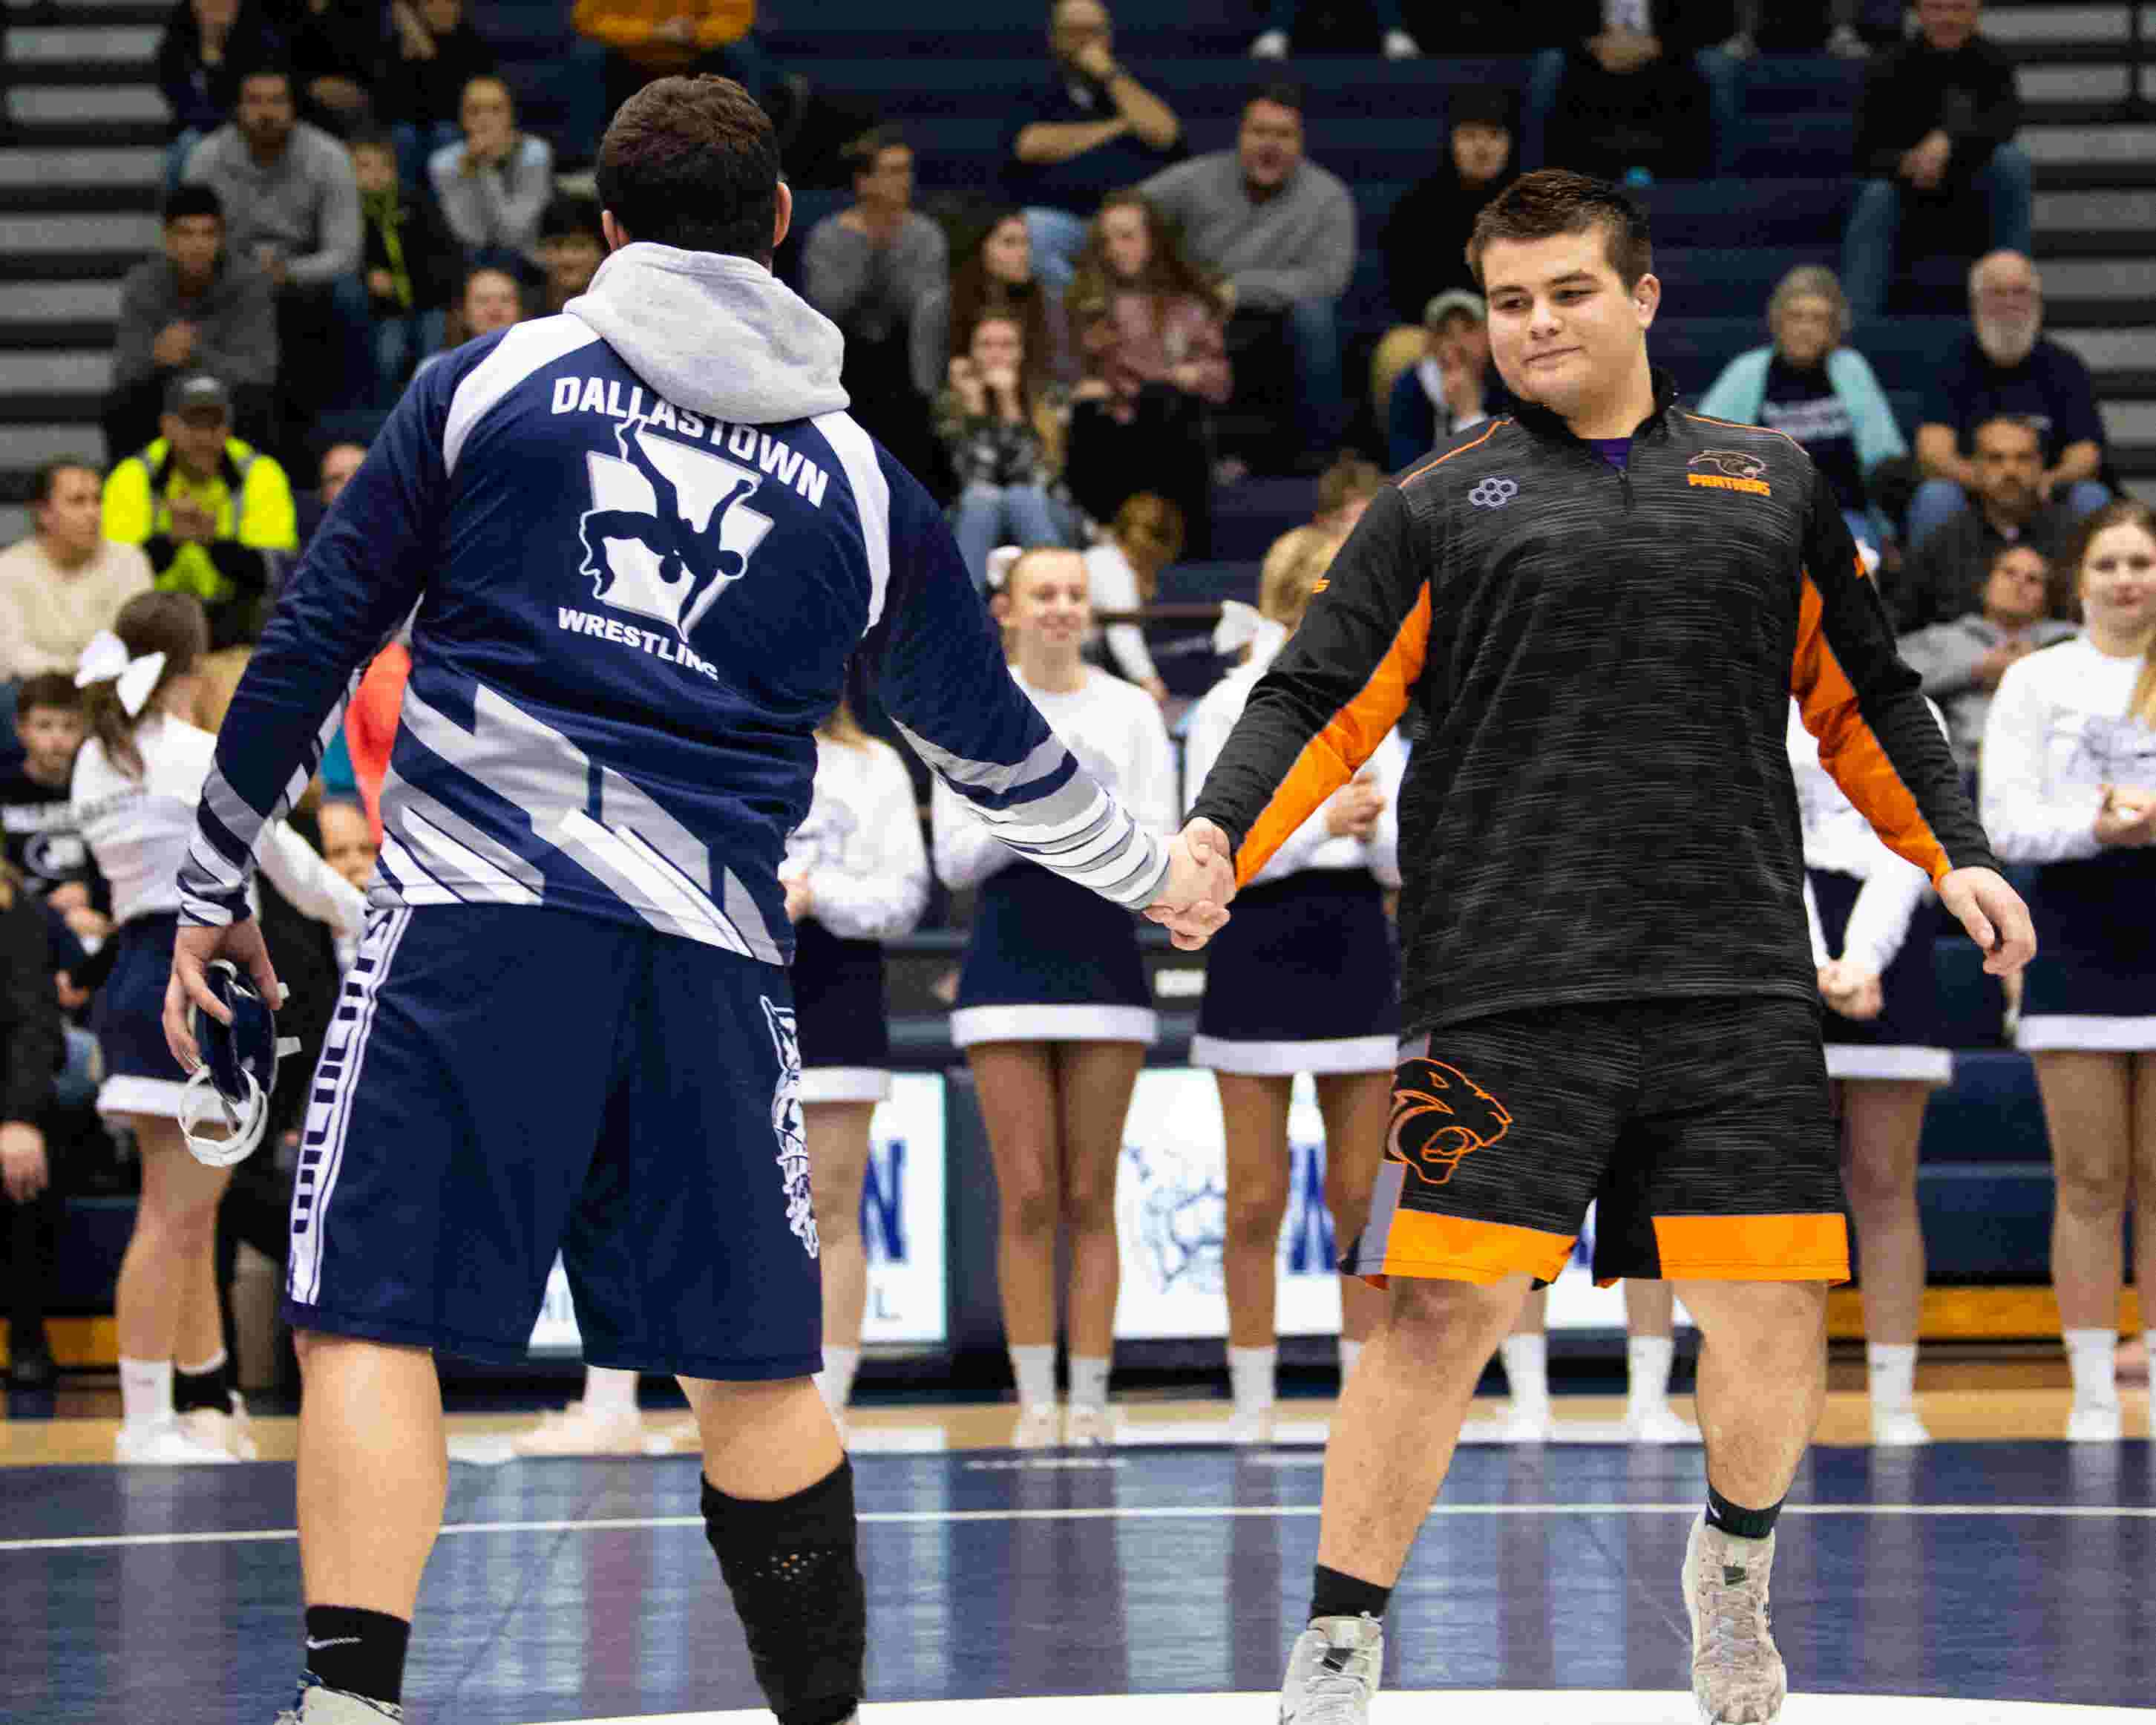 85b45533465 PIAA wrestling  Dallastown heavyweight misses bout with injury